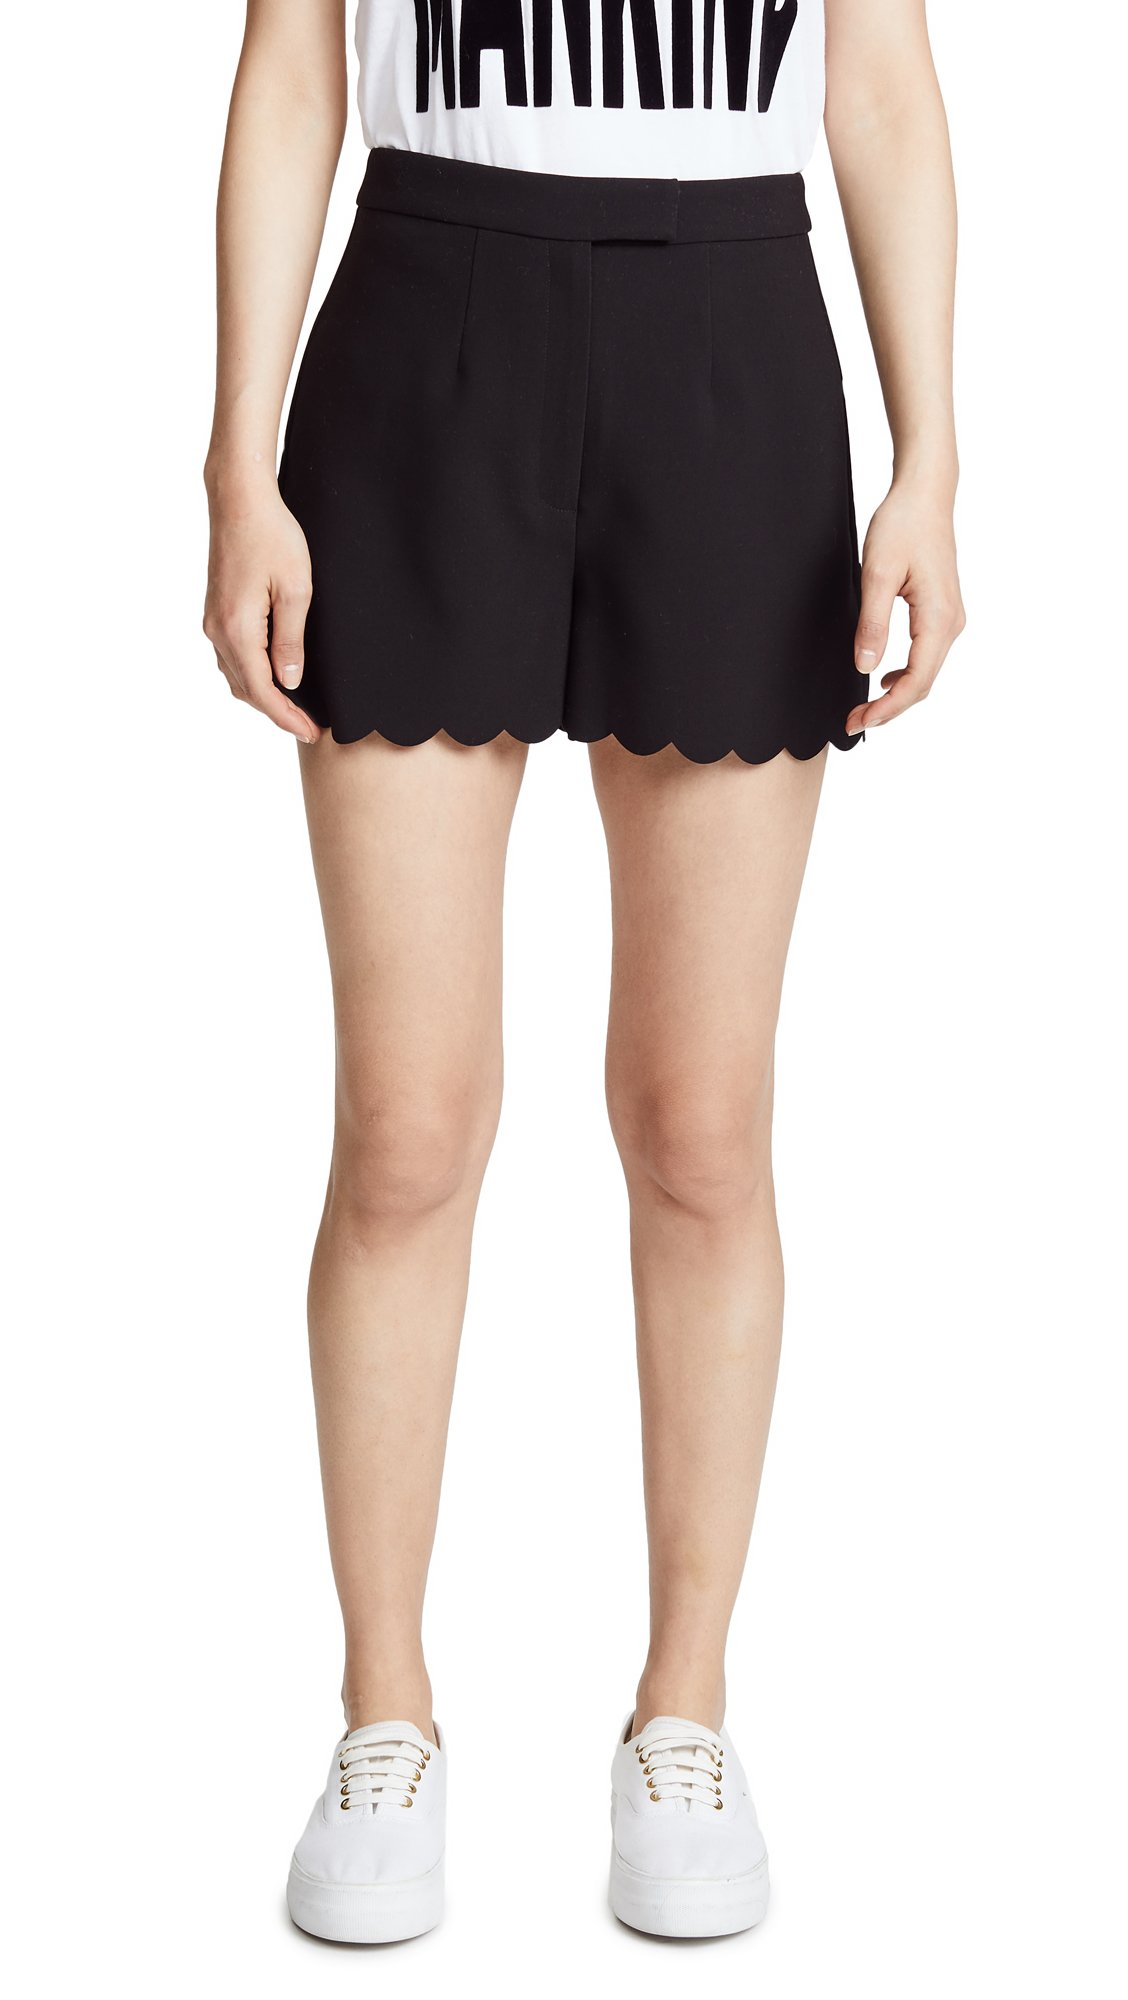 LIKELY Women's Hutton Shorts, Black, 6